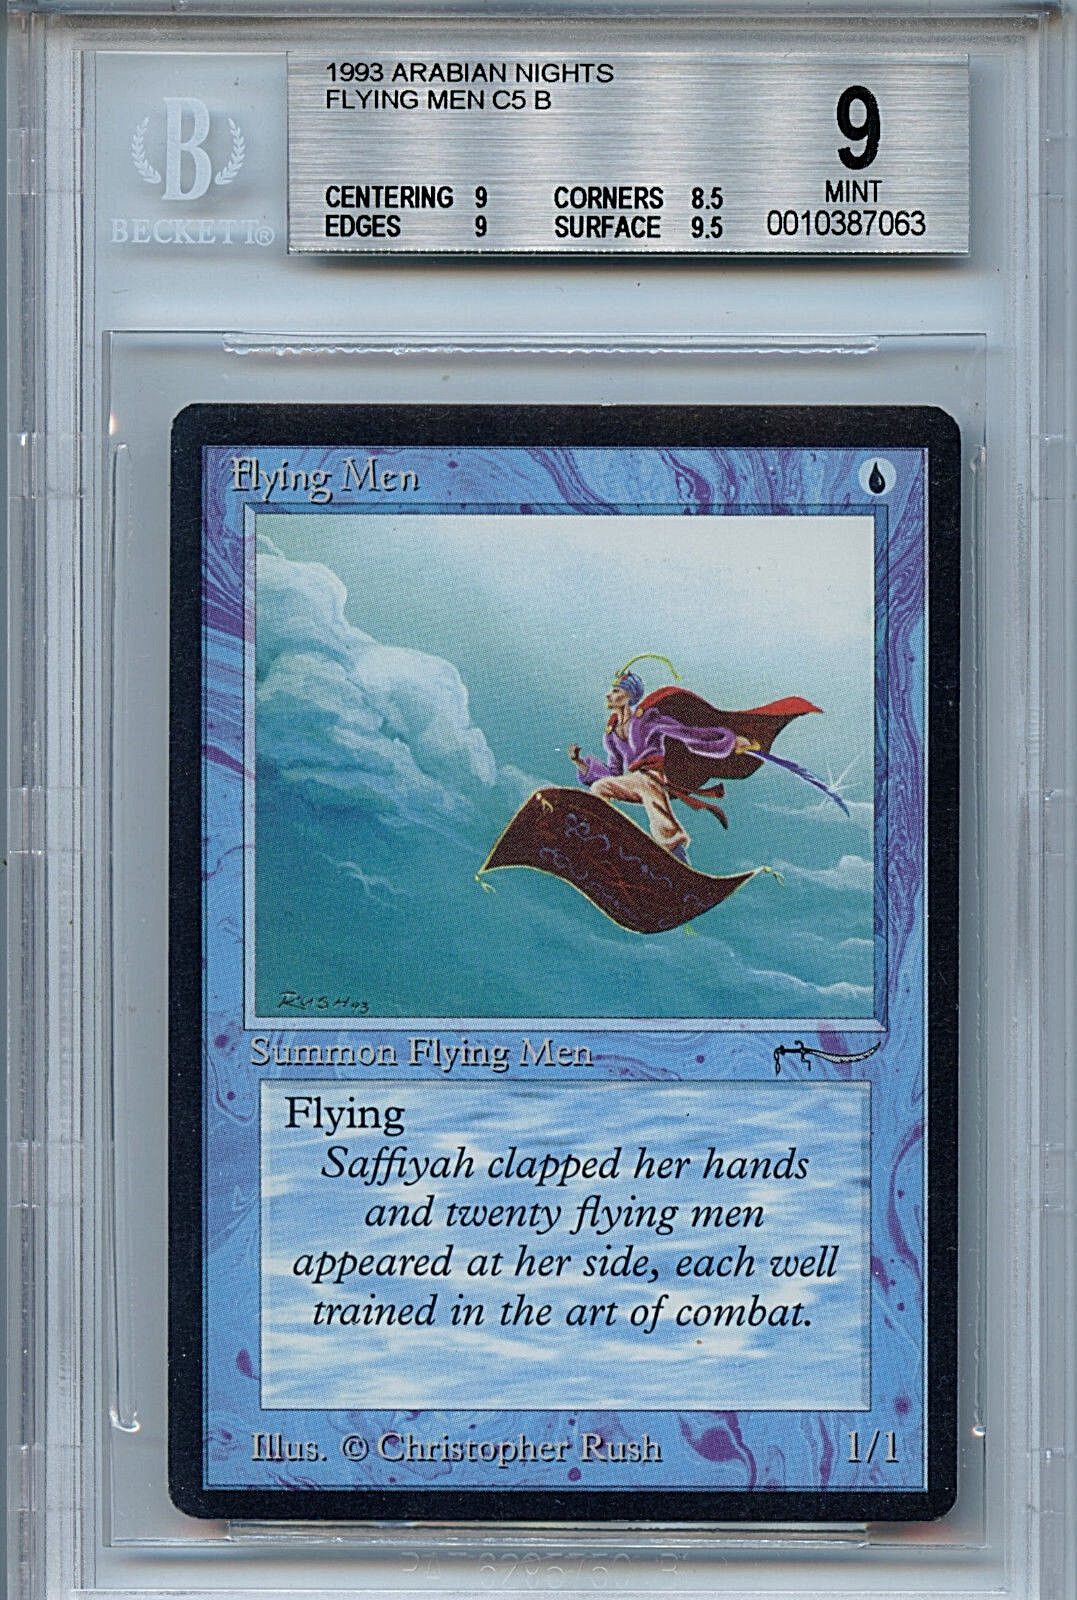 MTG Arabian Nights Nights Nights Flying Men BGS 9.0 (9) Mint  Magic the Gathering WOTC 7063 0ba5da